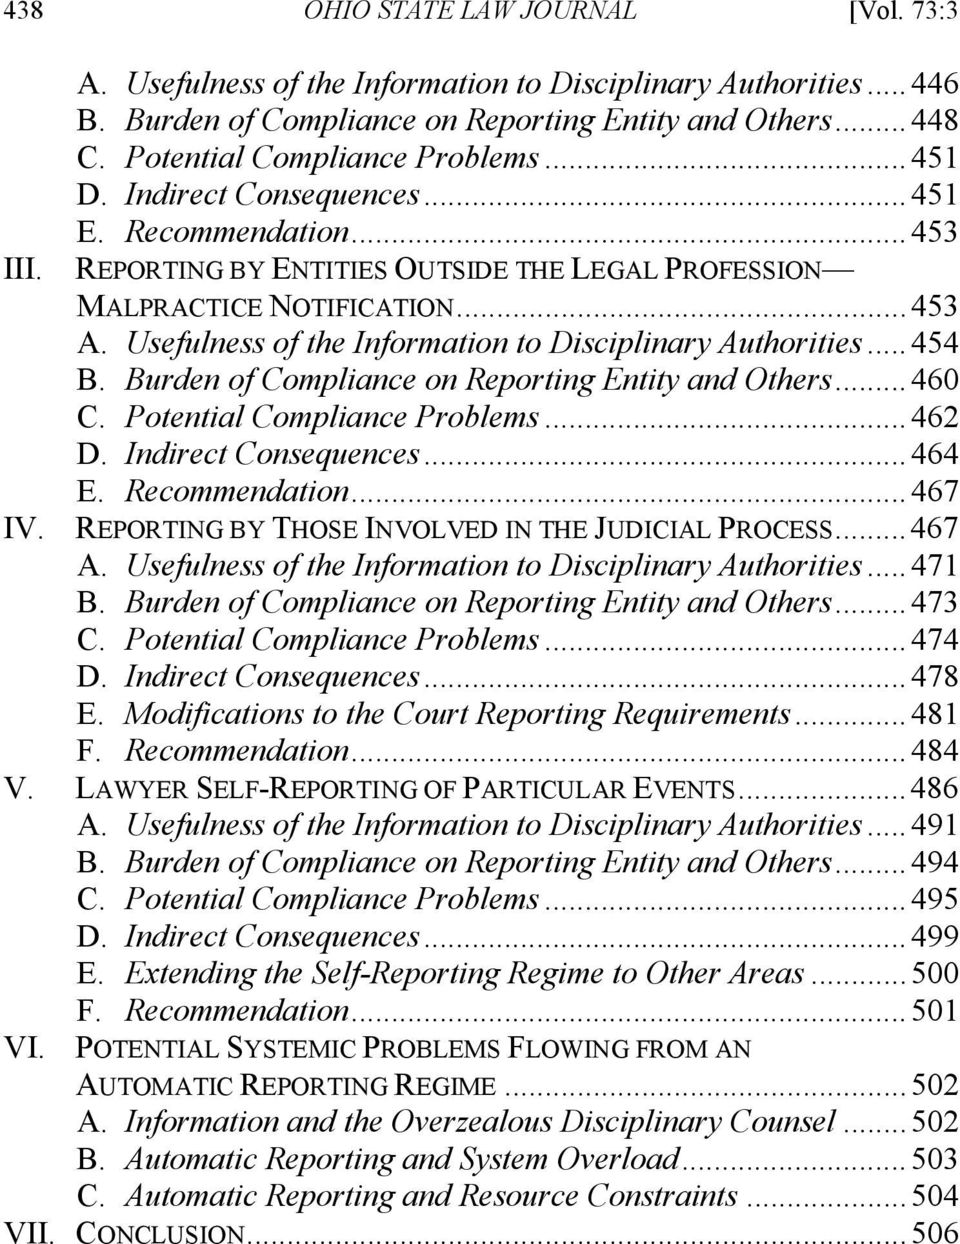 Usefulness of the Information to Disciplinary Authorities... 454 B. Burden of Compliance on Reporting Entity and Others... 460 C. Potential Compliance Problems... 462 D. Indirect Consequences... 464 E.